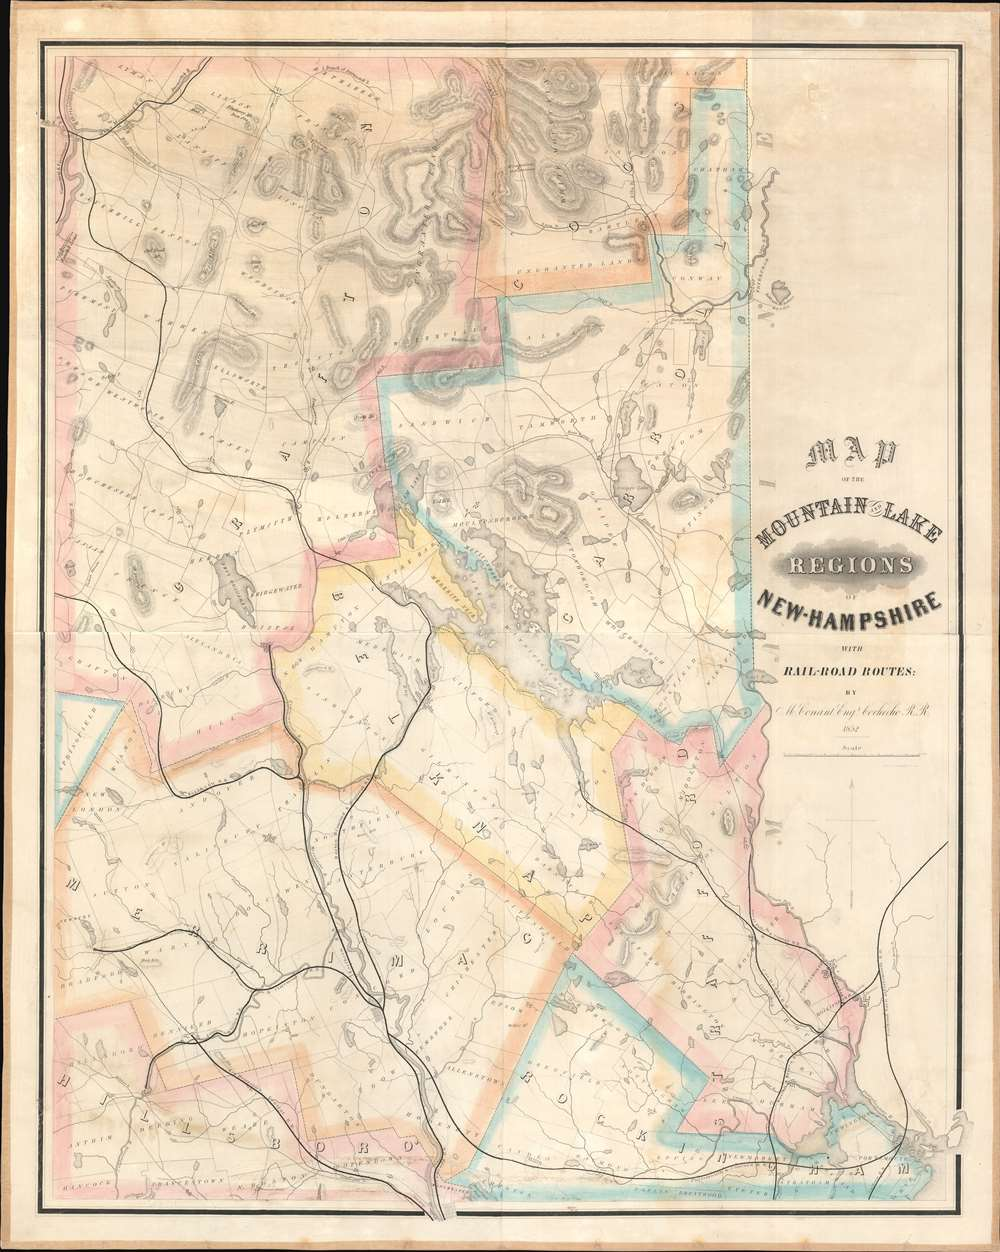 Map of the Mountain and Lake Regions of New Hampshire with Rail-Road Routes. - Main View